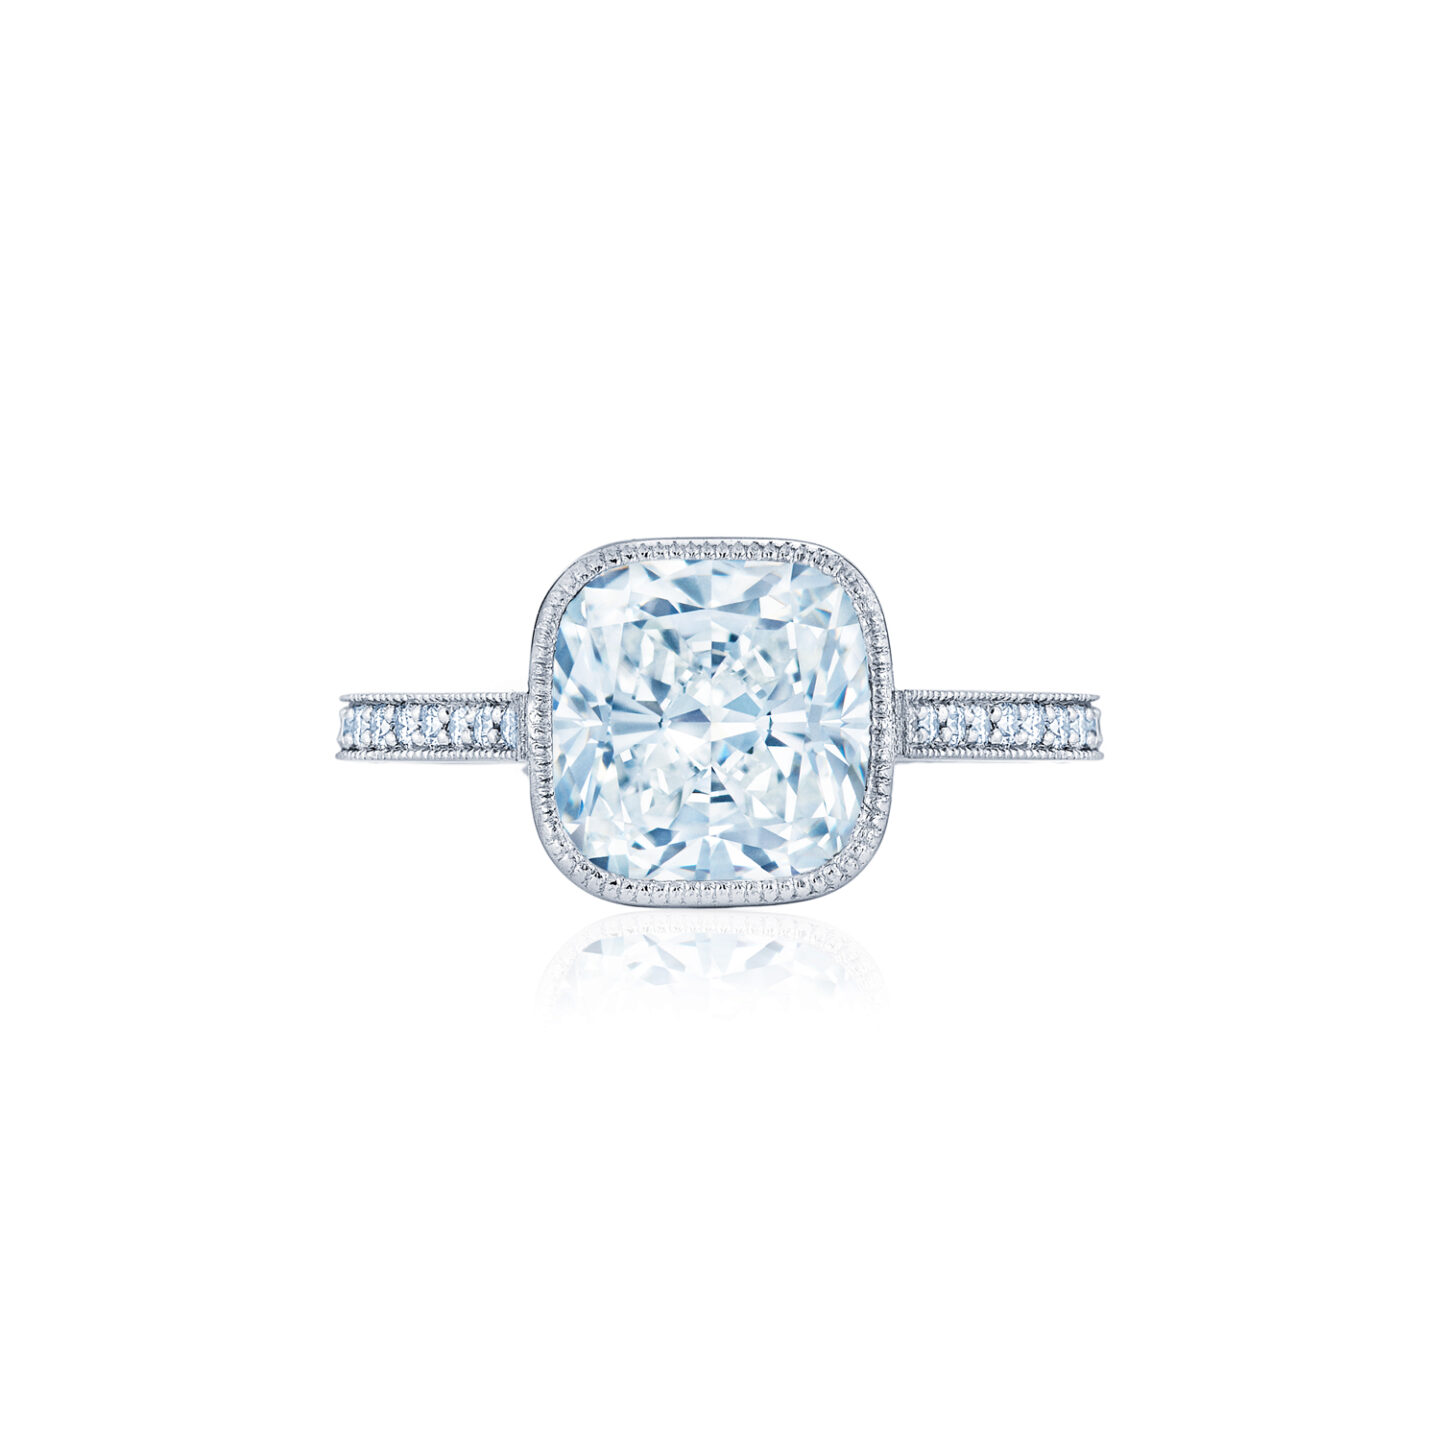 Cushion Cut Diamond Engagement Ring In A Bezel Setting With A Milgrain Edge In Platinum